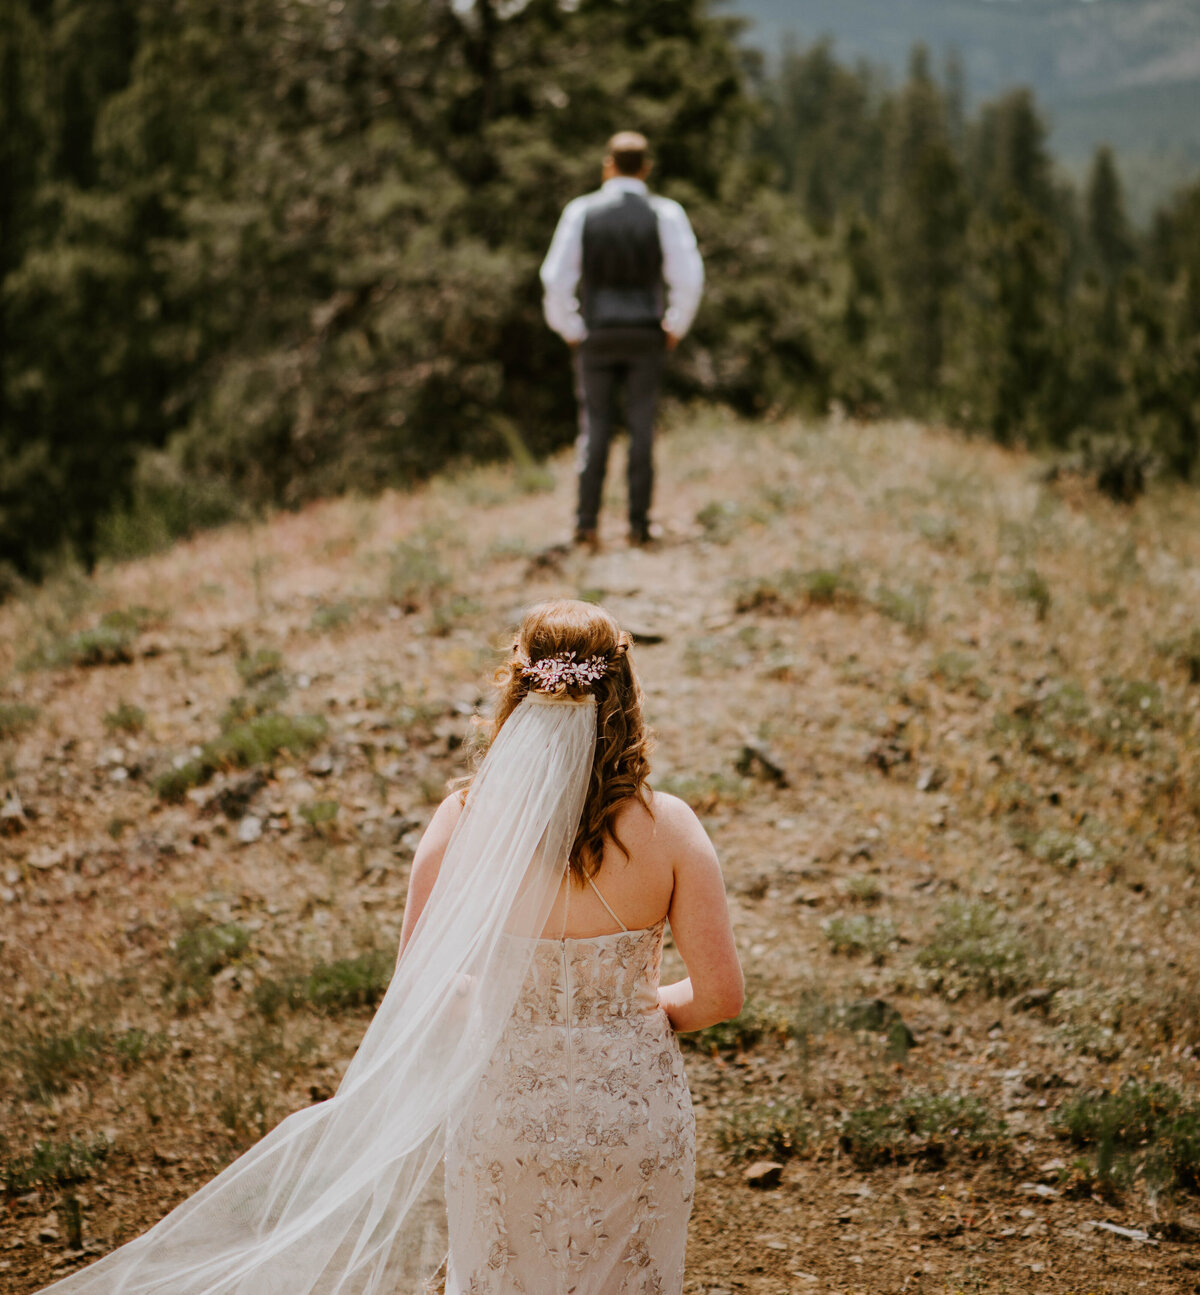 ochoco-forest-central-oregon-elopement-pnw-woods-wedding-covid-bend-photographer-inspiration2030